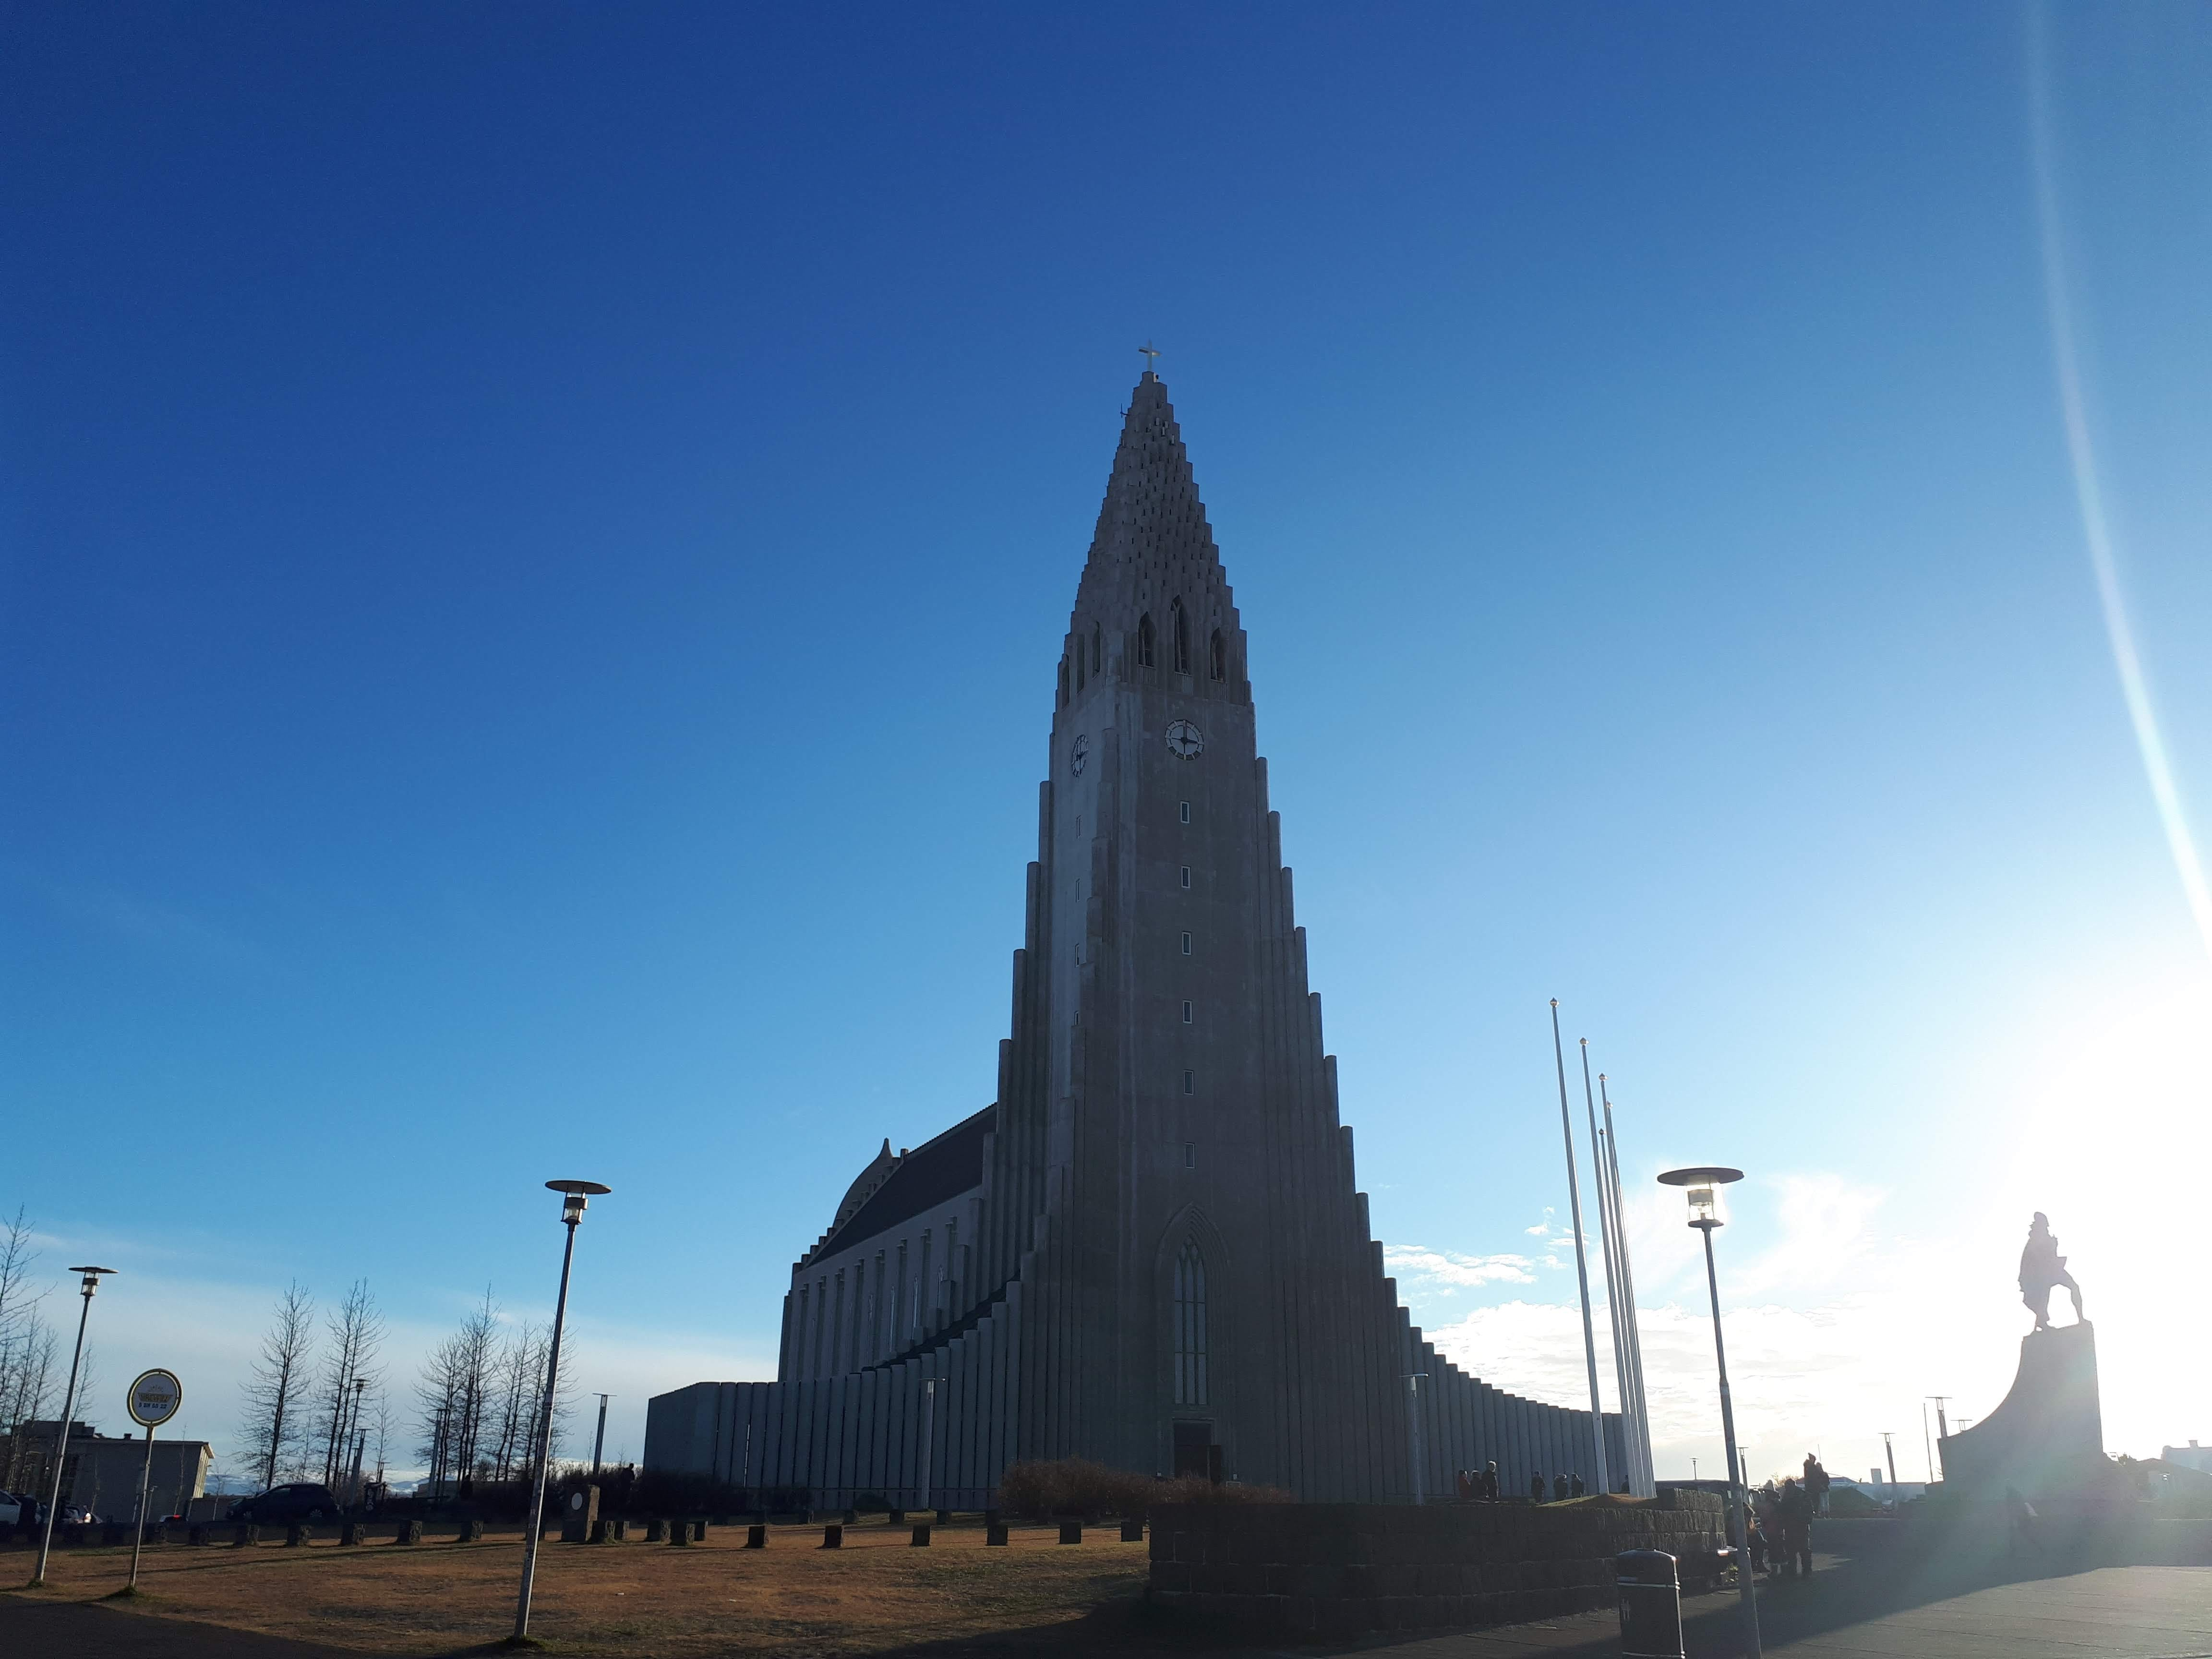 The Hallgrímskirkja Church